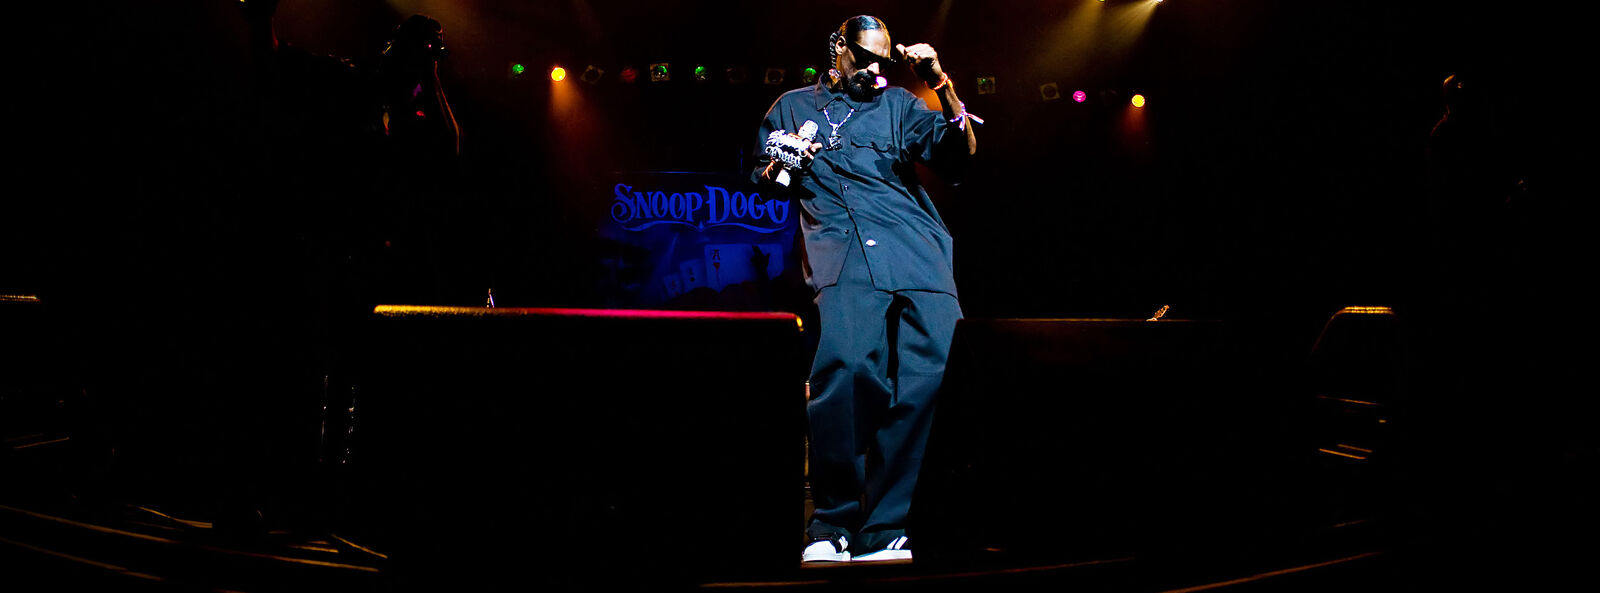 PARKING PASSES ONLY How The West Was Won with Snoop Dogg, E-40, Too Short and more